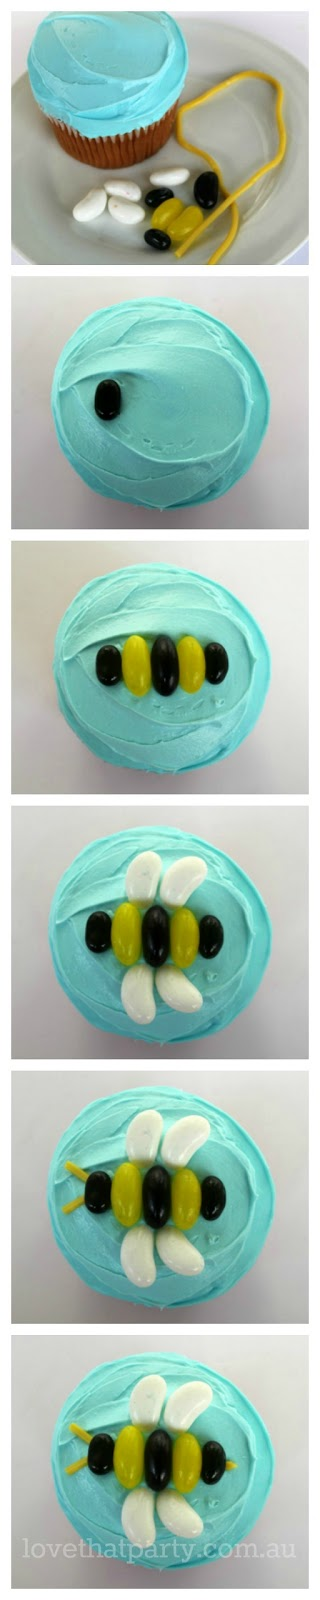 How to: super simple bee party cake tutorial. www.lovethatparty.com.au